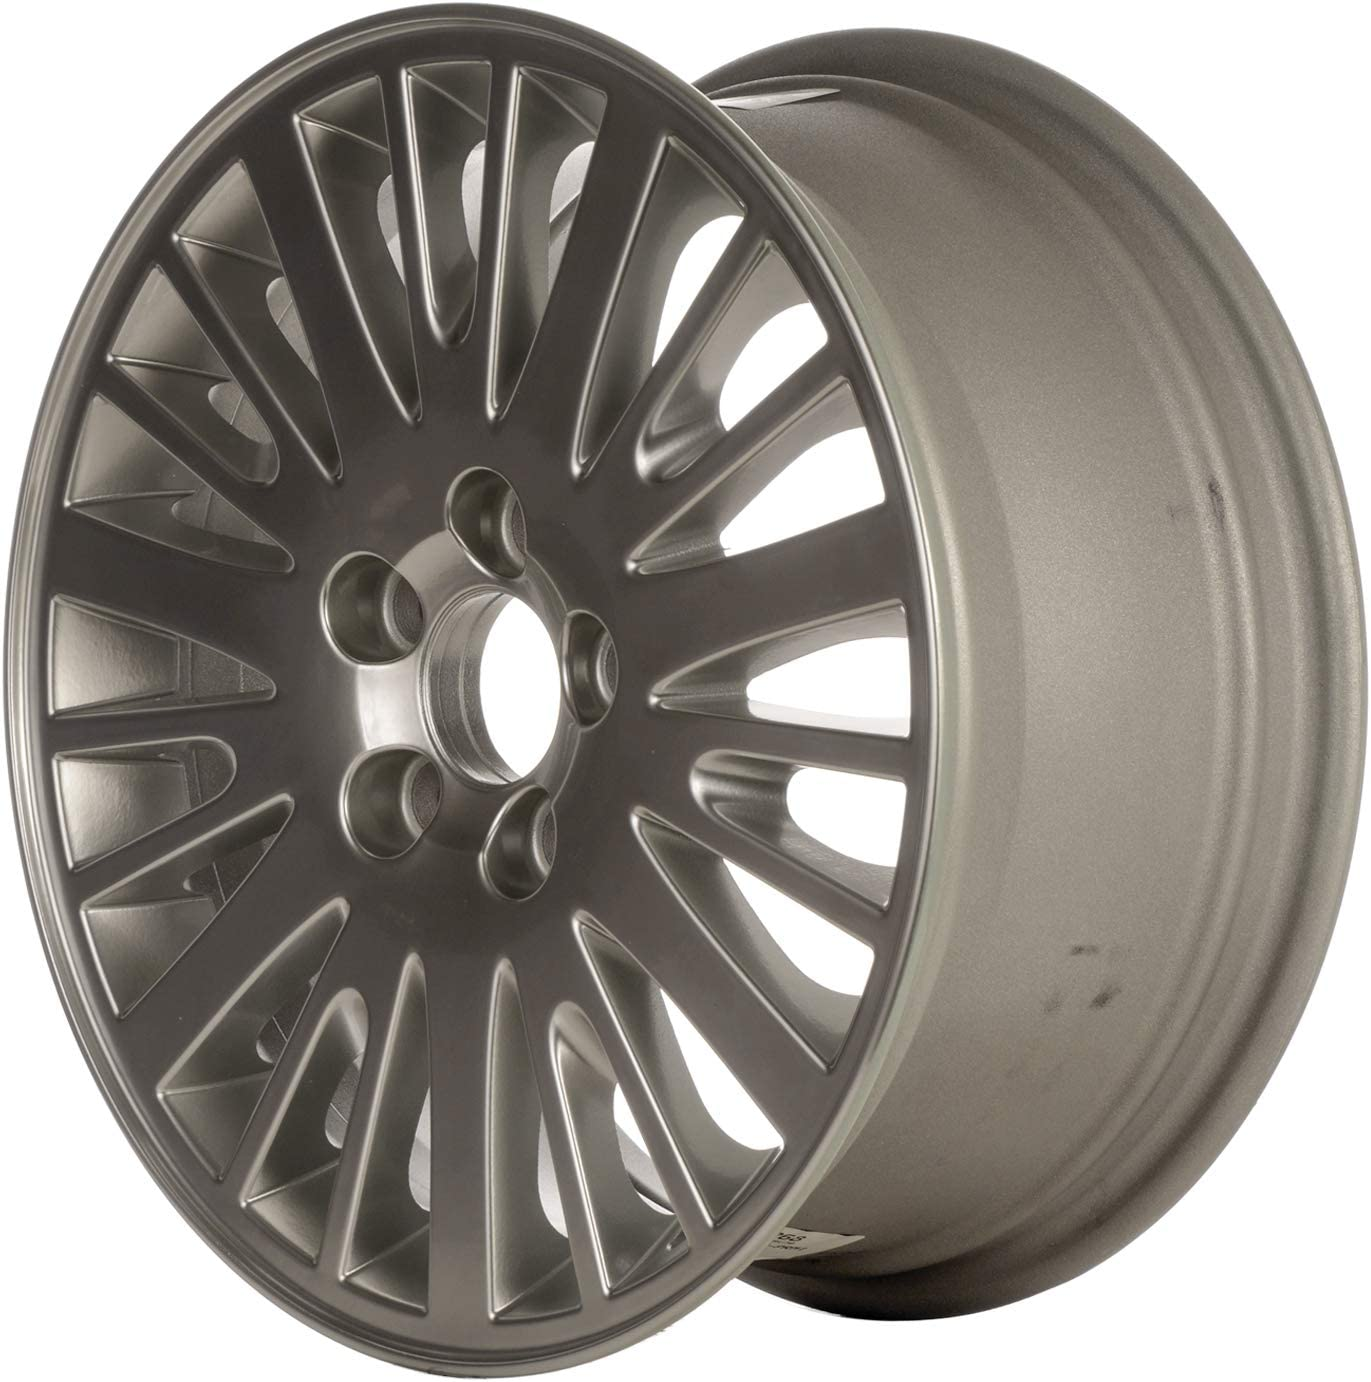 Factory Wheel Warehouse - New Vo Safety and trust OEM price 16